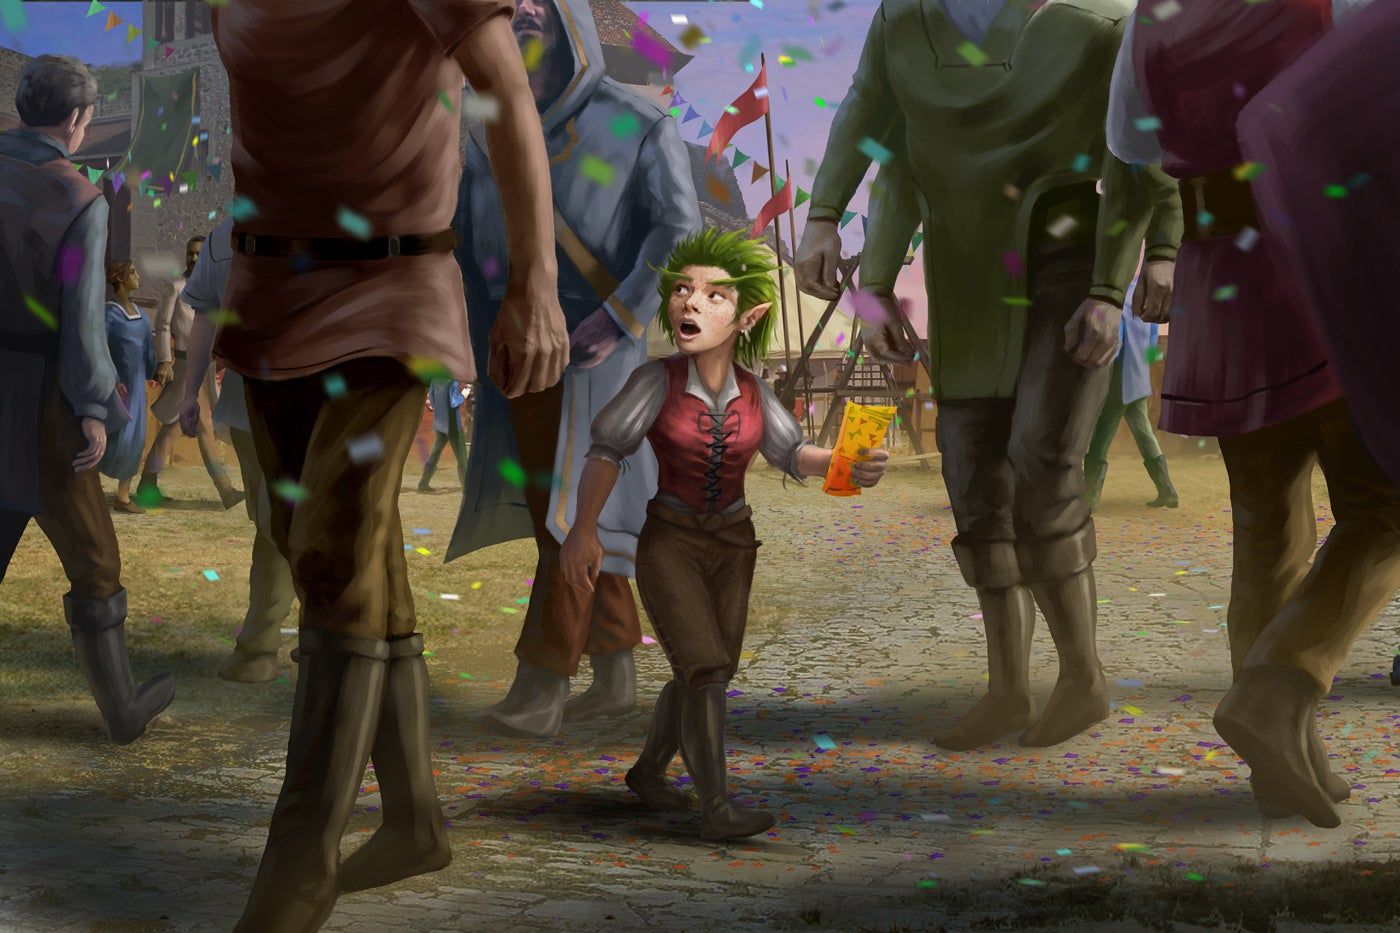 A wide-eyed, green-haired gnome makes her way through a crowd on the streets of a bustling fairground